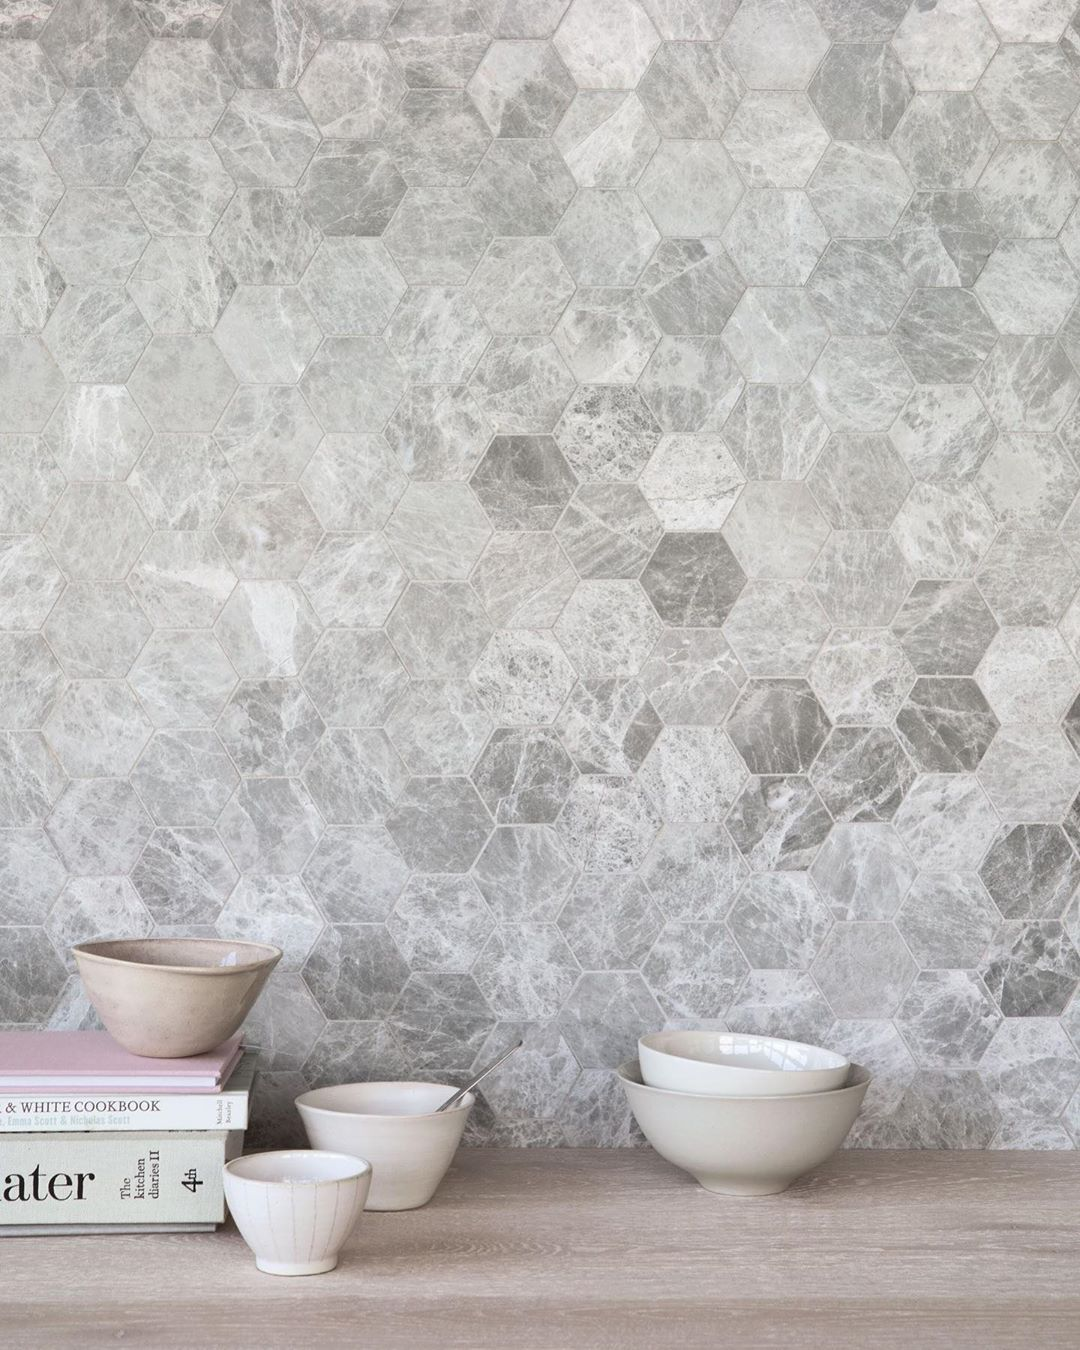 Claybrook Uk On Instagram Marble Is Not Only Practical As A Solution For Walls And Floors But Has An Hexagonal Mosaic Mosaic Tile Designs Custom Mosaic Tile